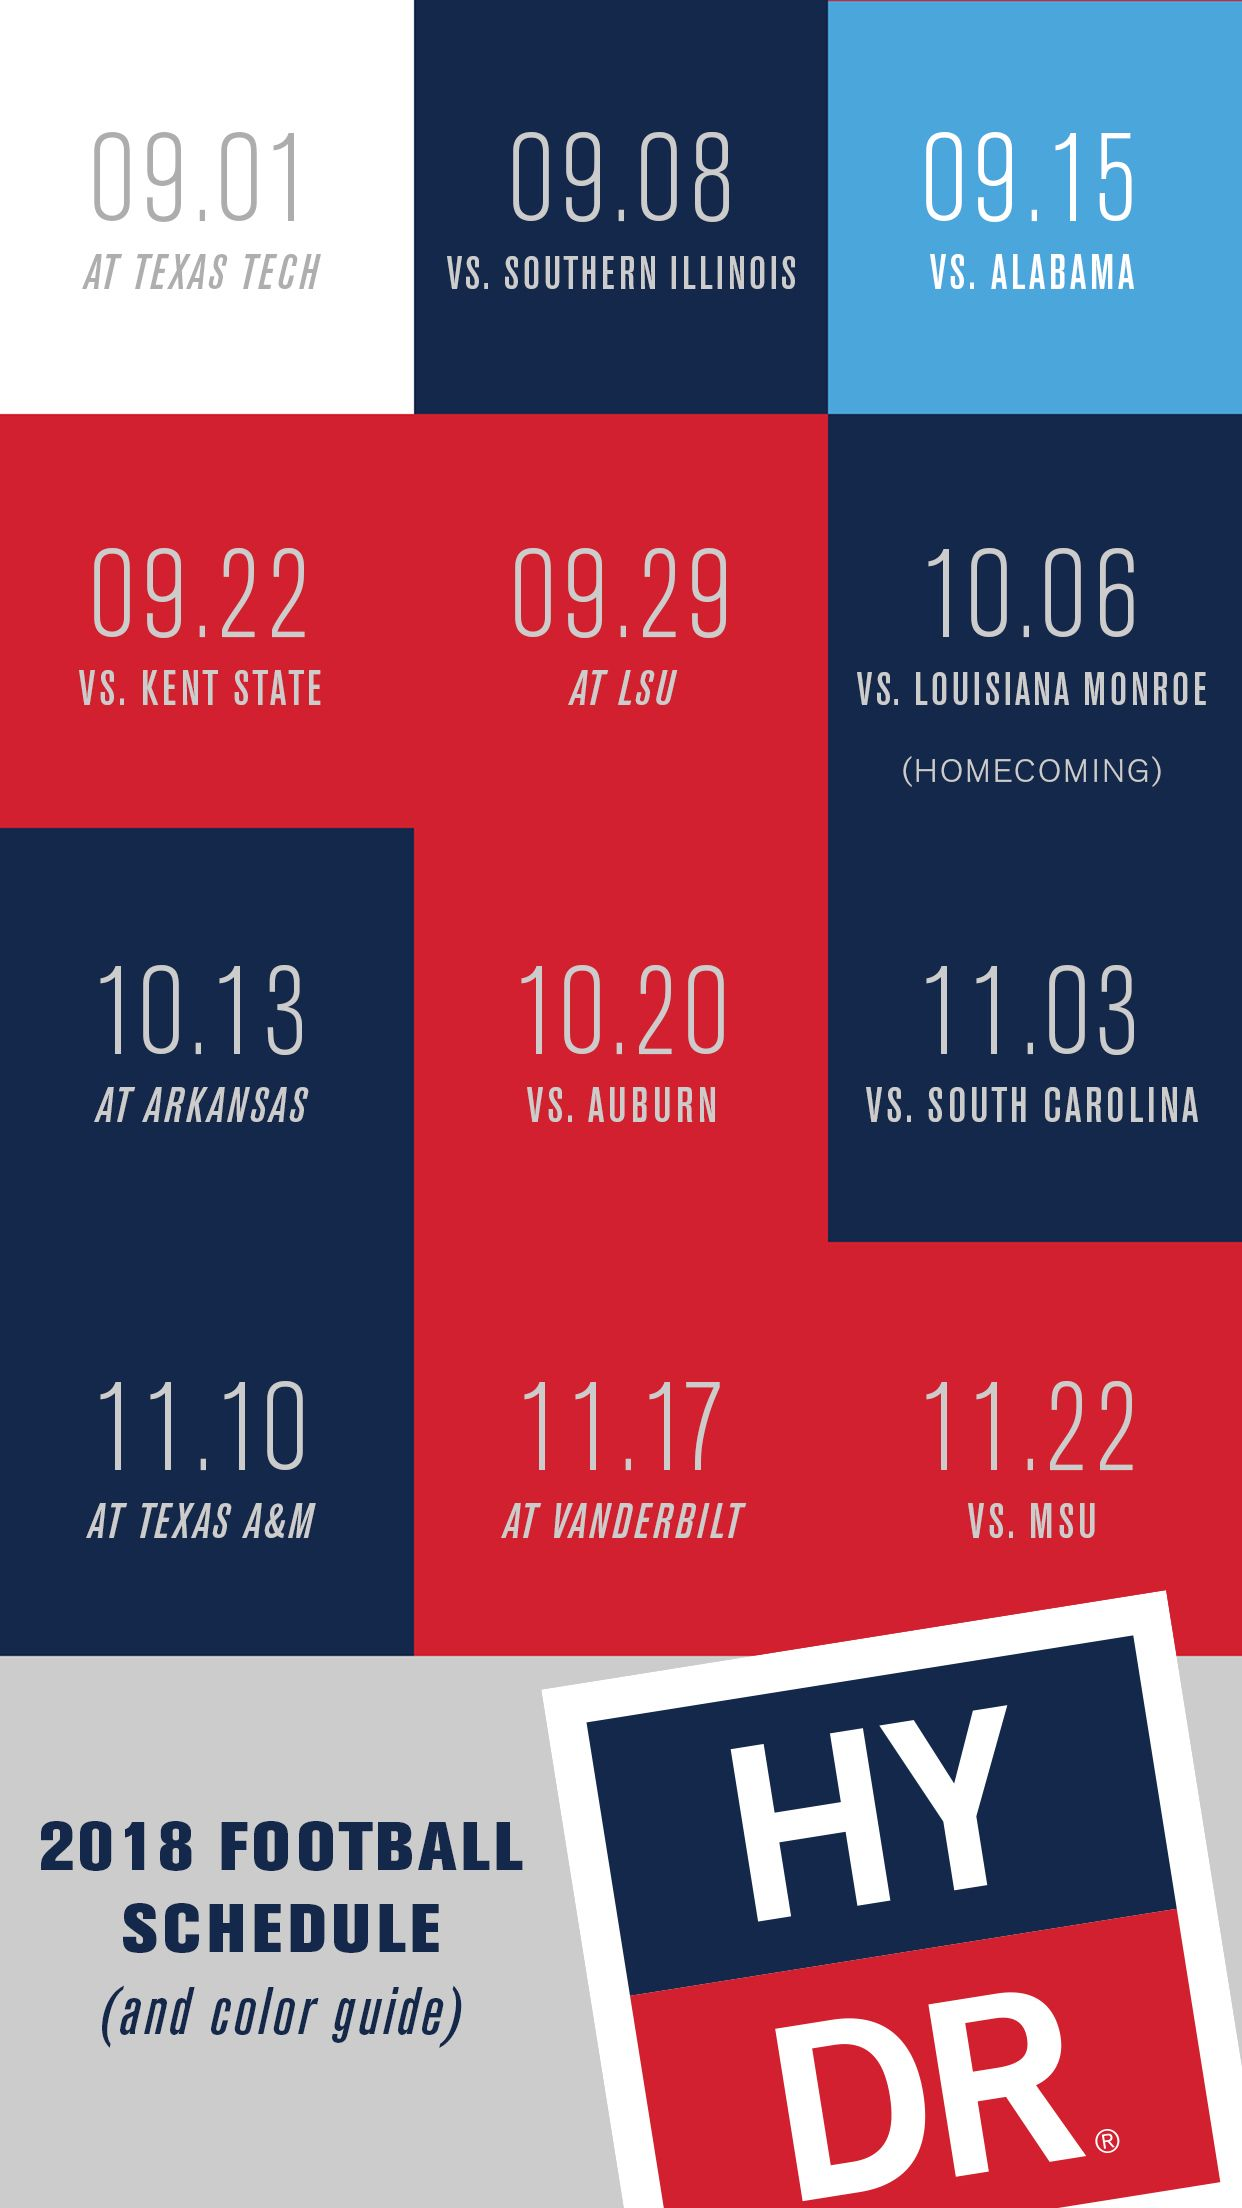 Ole Miss Schedule 2019 HYDR   Ole Miss Football 2018 Schedule and What to Wear Guide